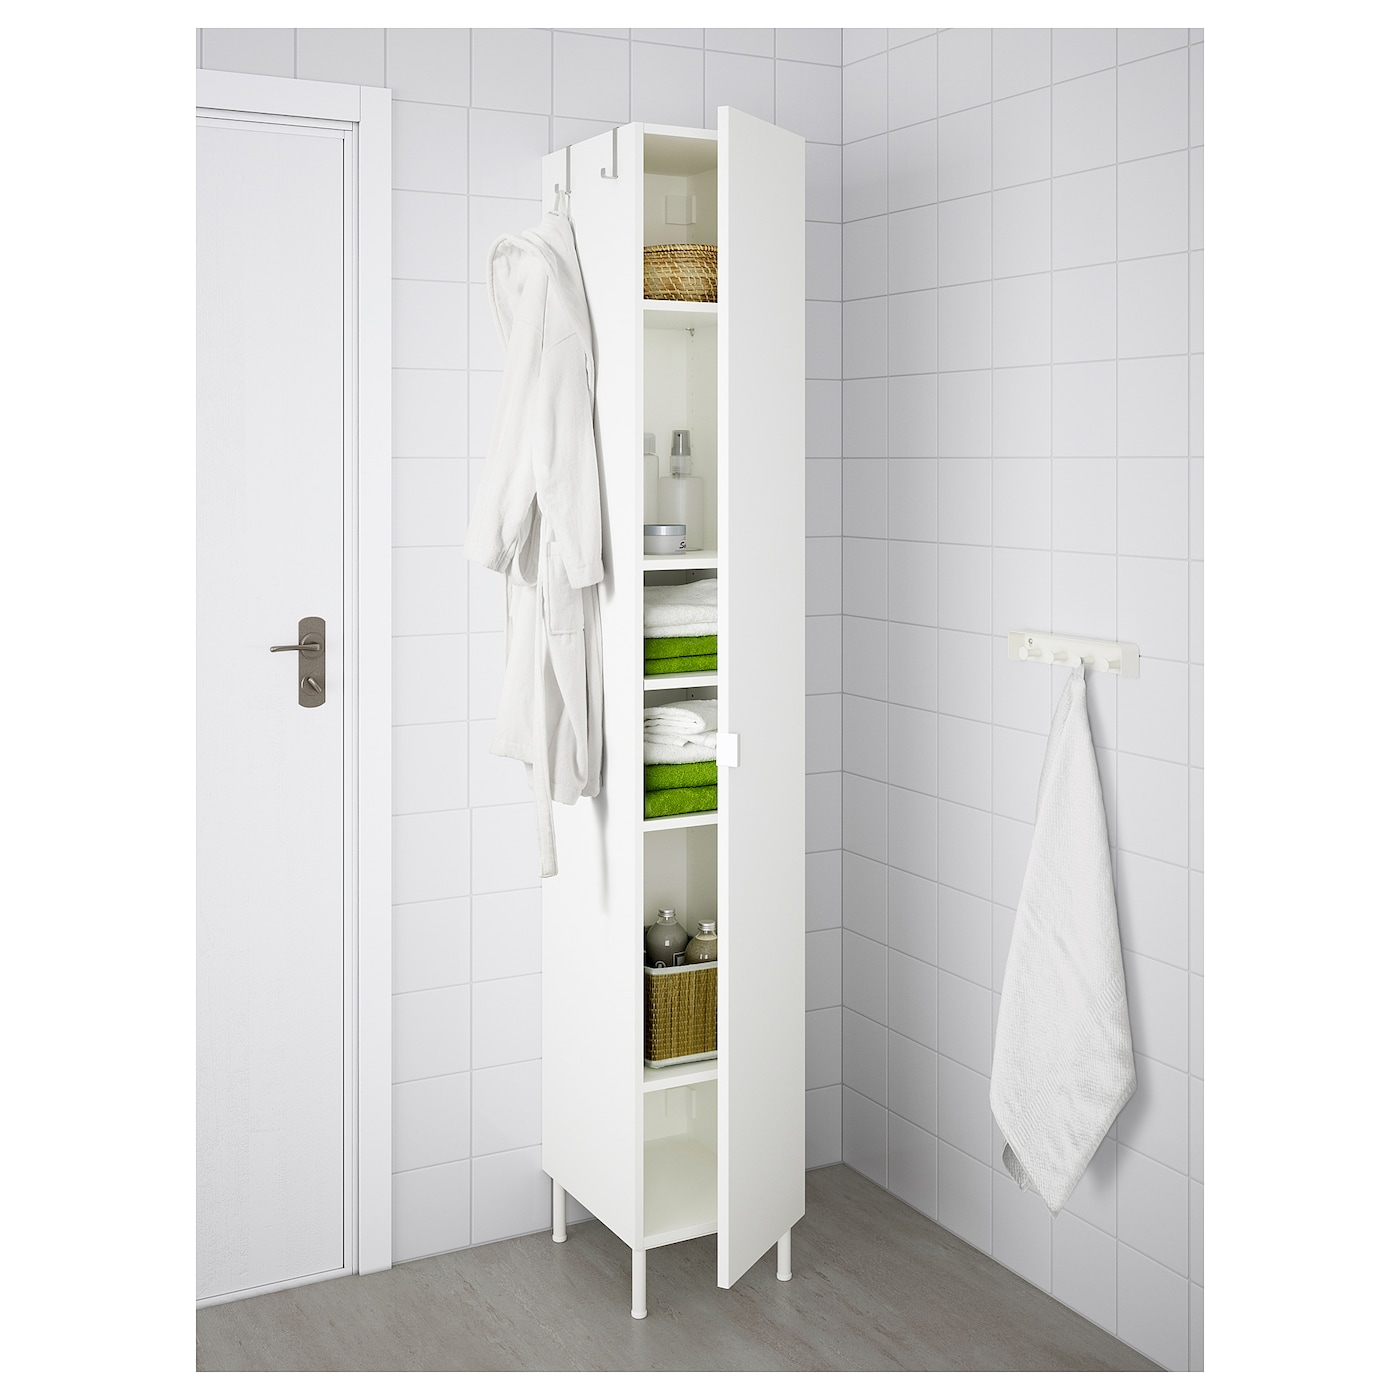 IKEA LILLÅNGEN high cabinet with 1 door You can mount the door to open from the right or left.